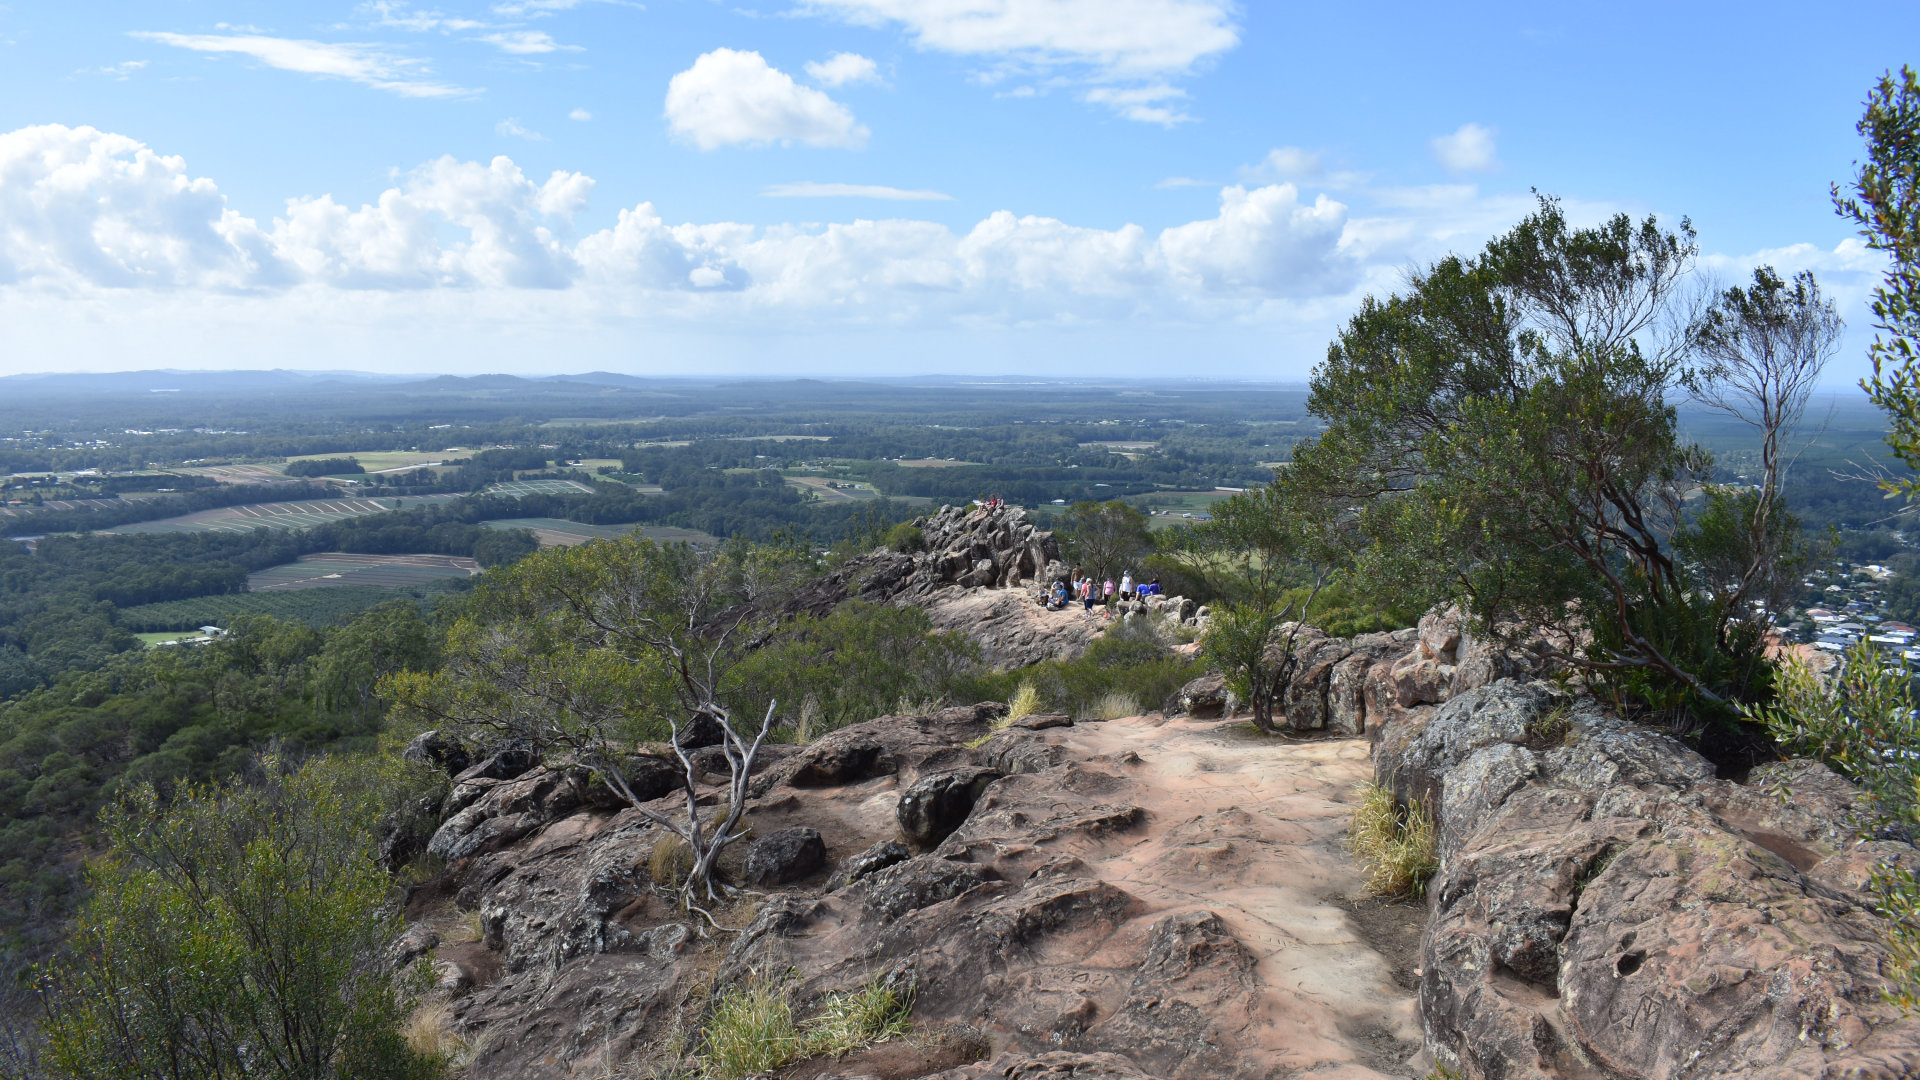 View from the summit of Mount Ngungun looking along the ridge at the top. One of the smaller of the Glass House peaks at 253m, it is one of the more accessible peaks to climb to the summit, with stunning views of Mt Tibrogargan, Mt Coonowrin, and Mt Beerwah